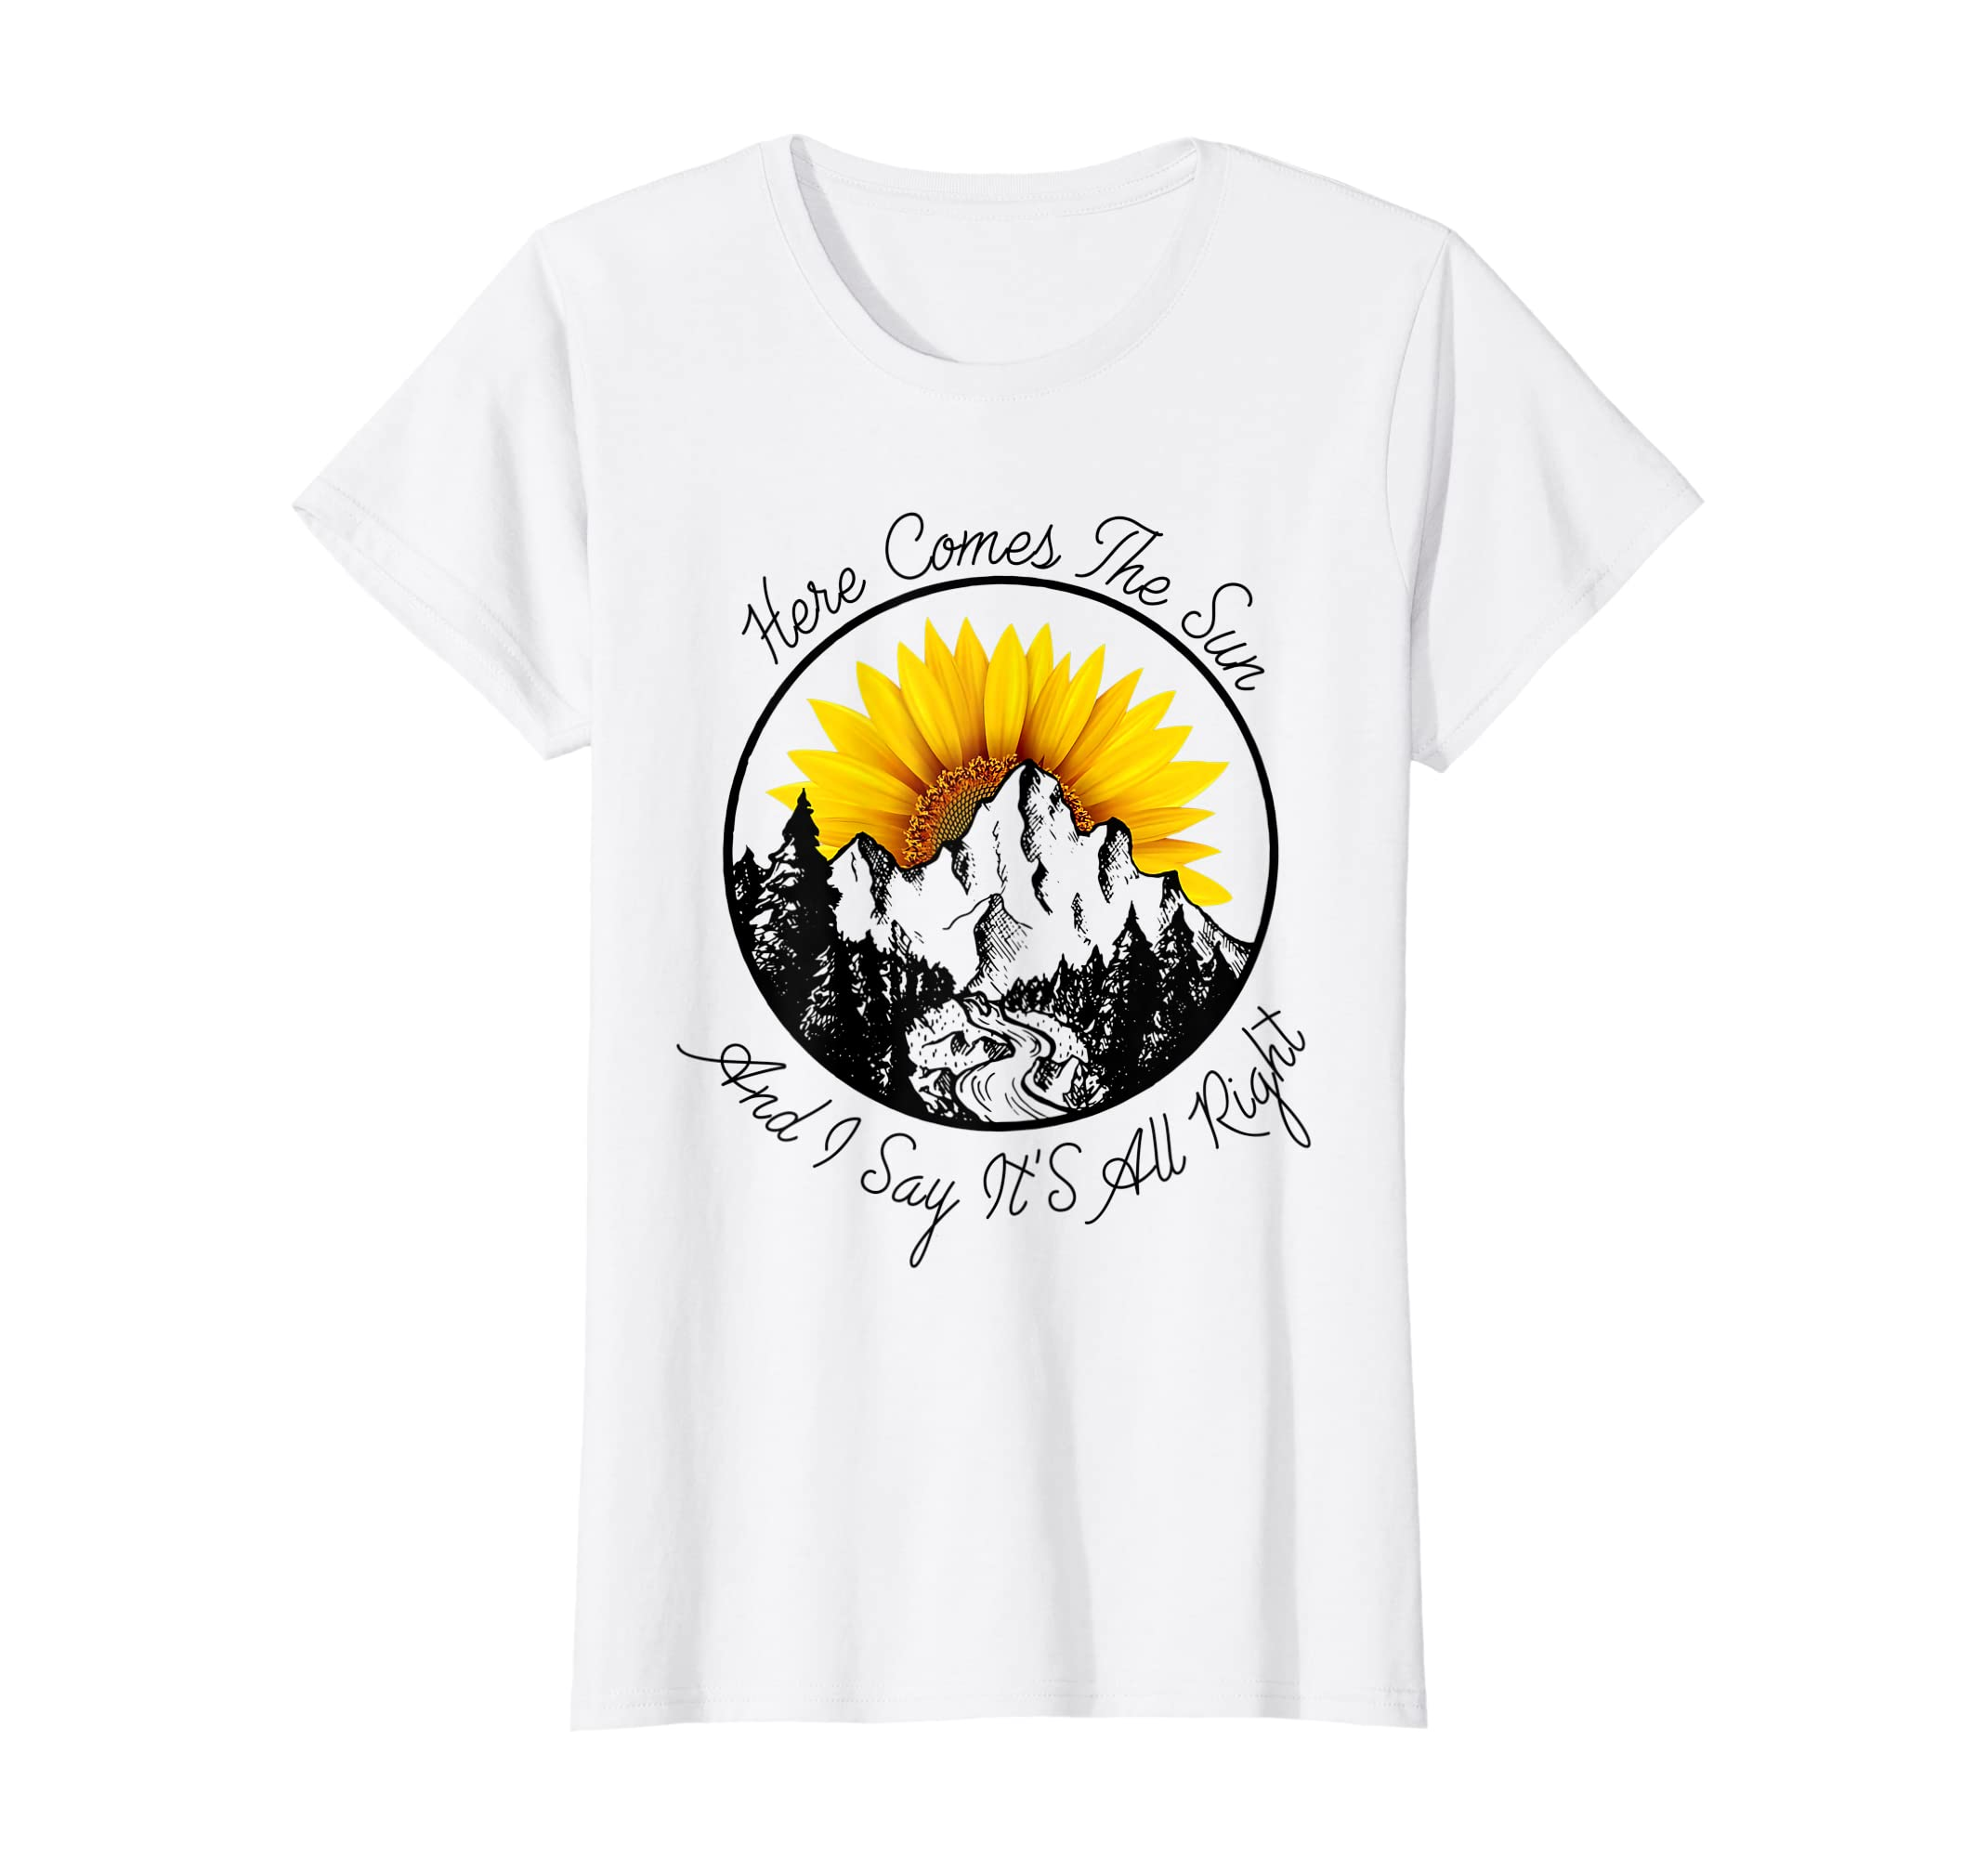 2a3d9408a023 Amazon.com  Here Comes The Sun And I Say It s All Right Sunlower T-Shirt   Clothing